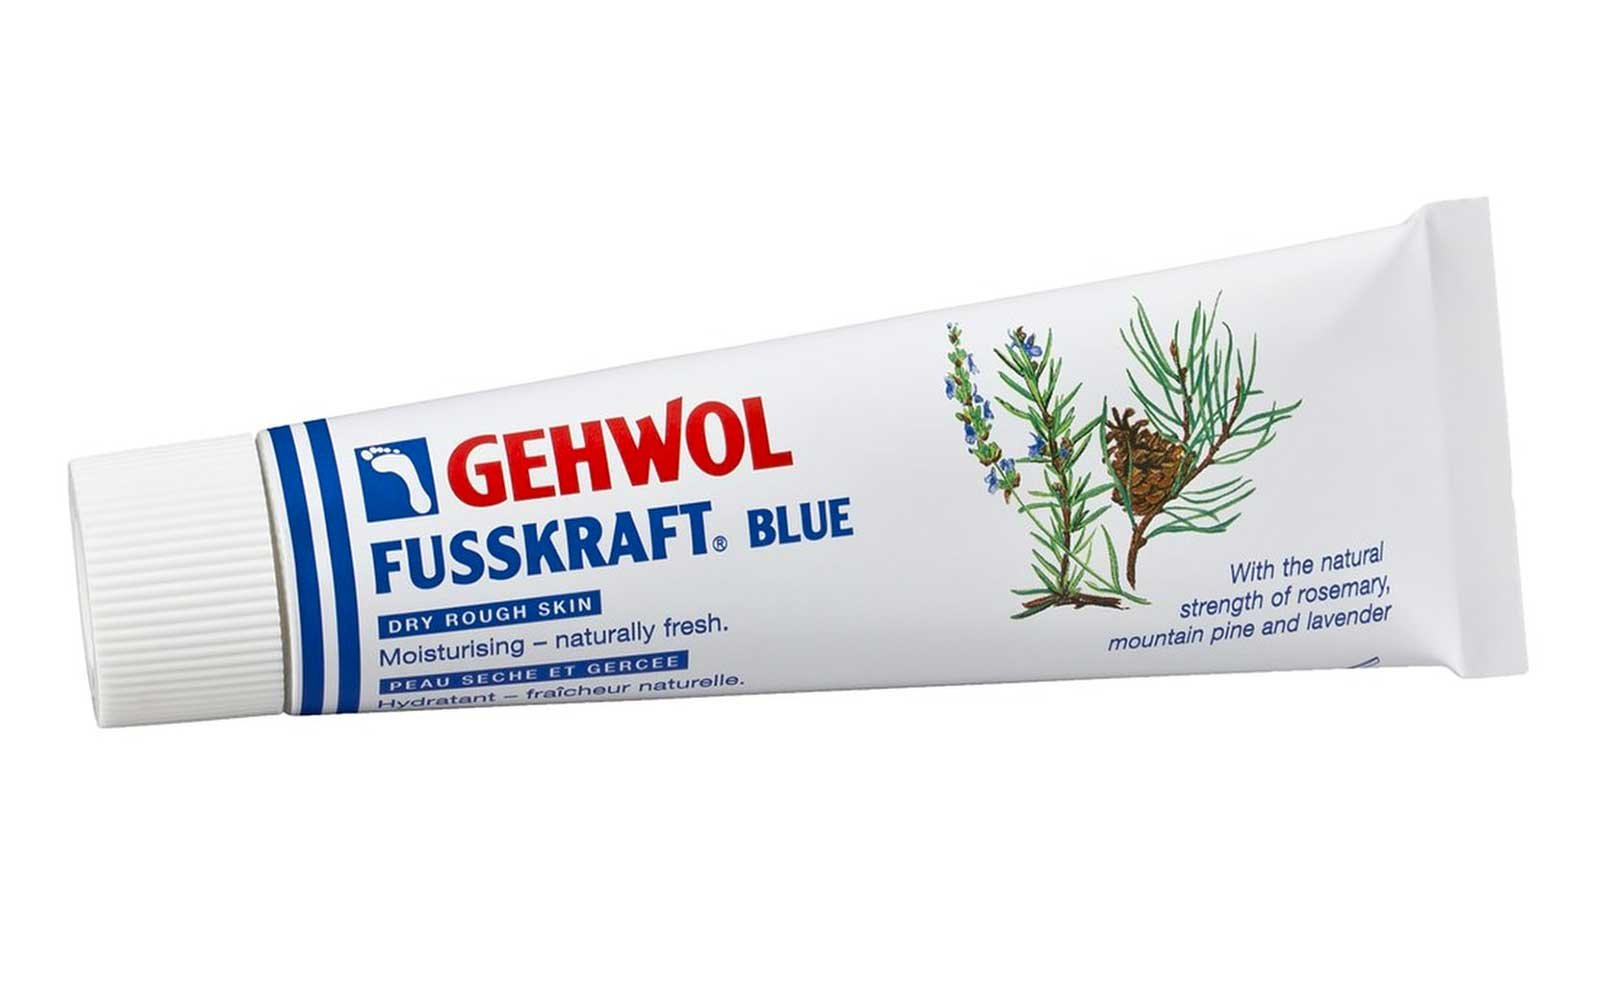 Gehwol moisturizing cream